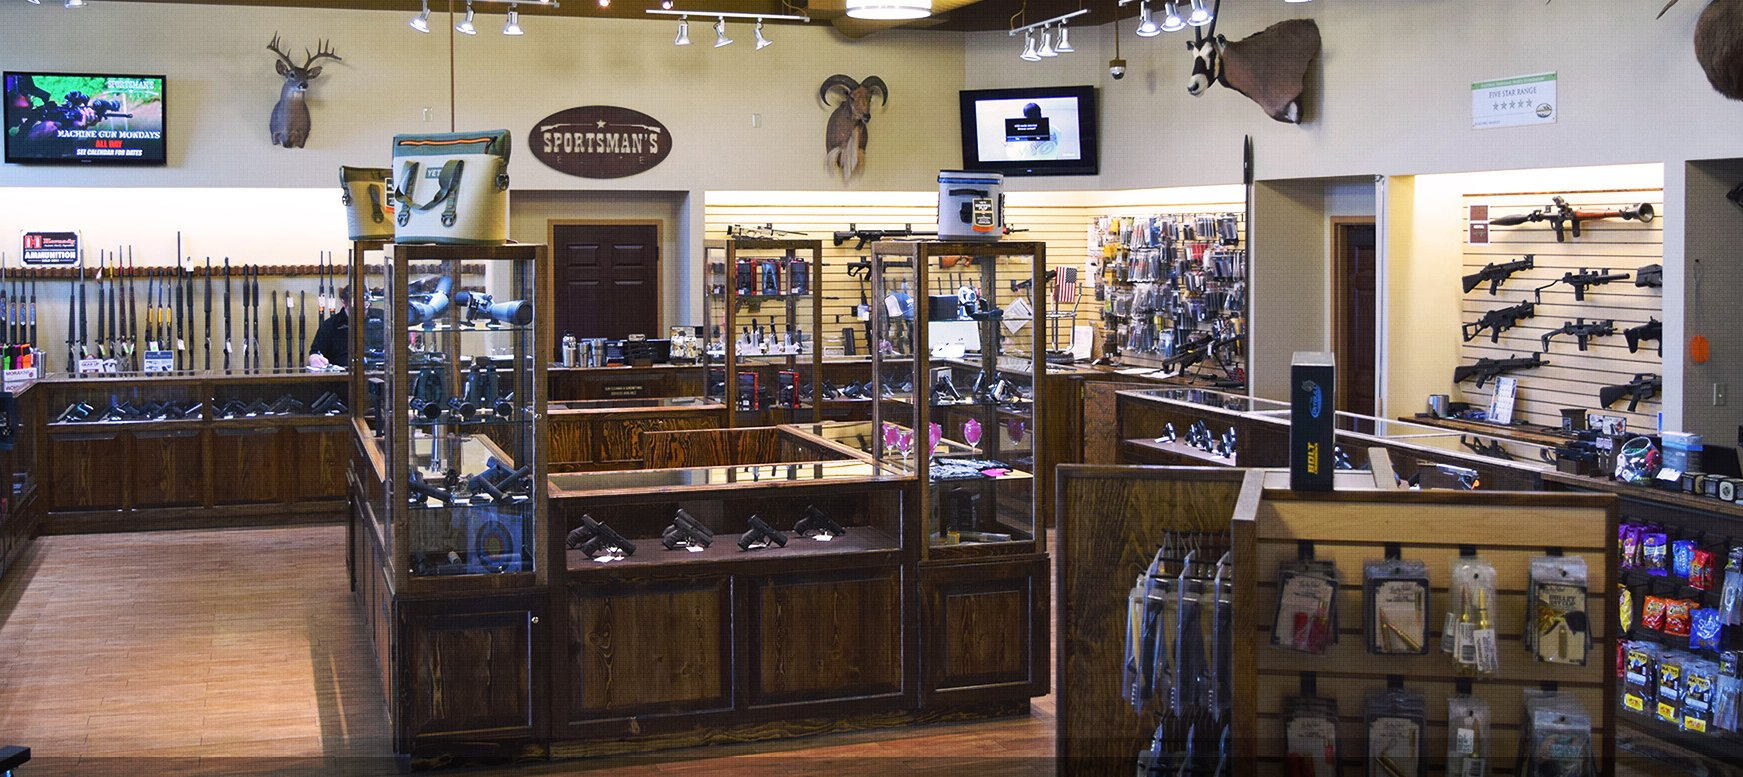 Best 30 Ruger Gun Stores in El Paso, TX with Reviews - YP.com